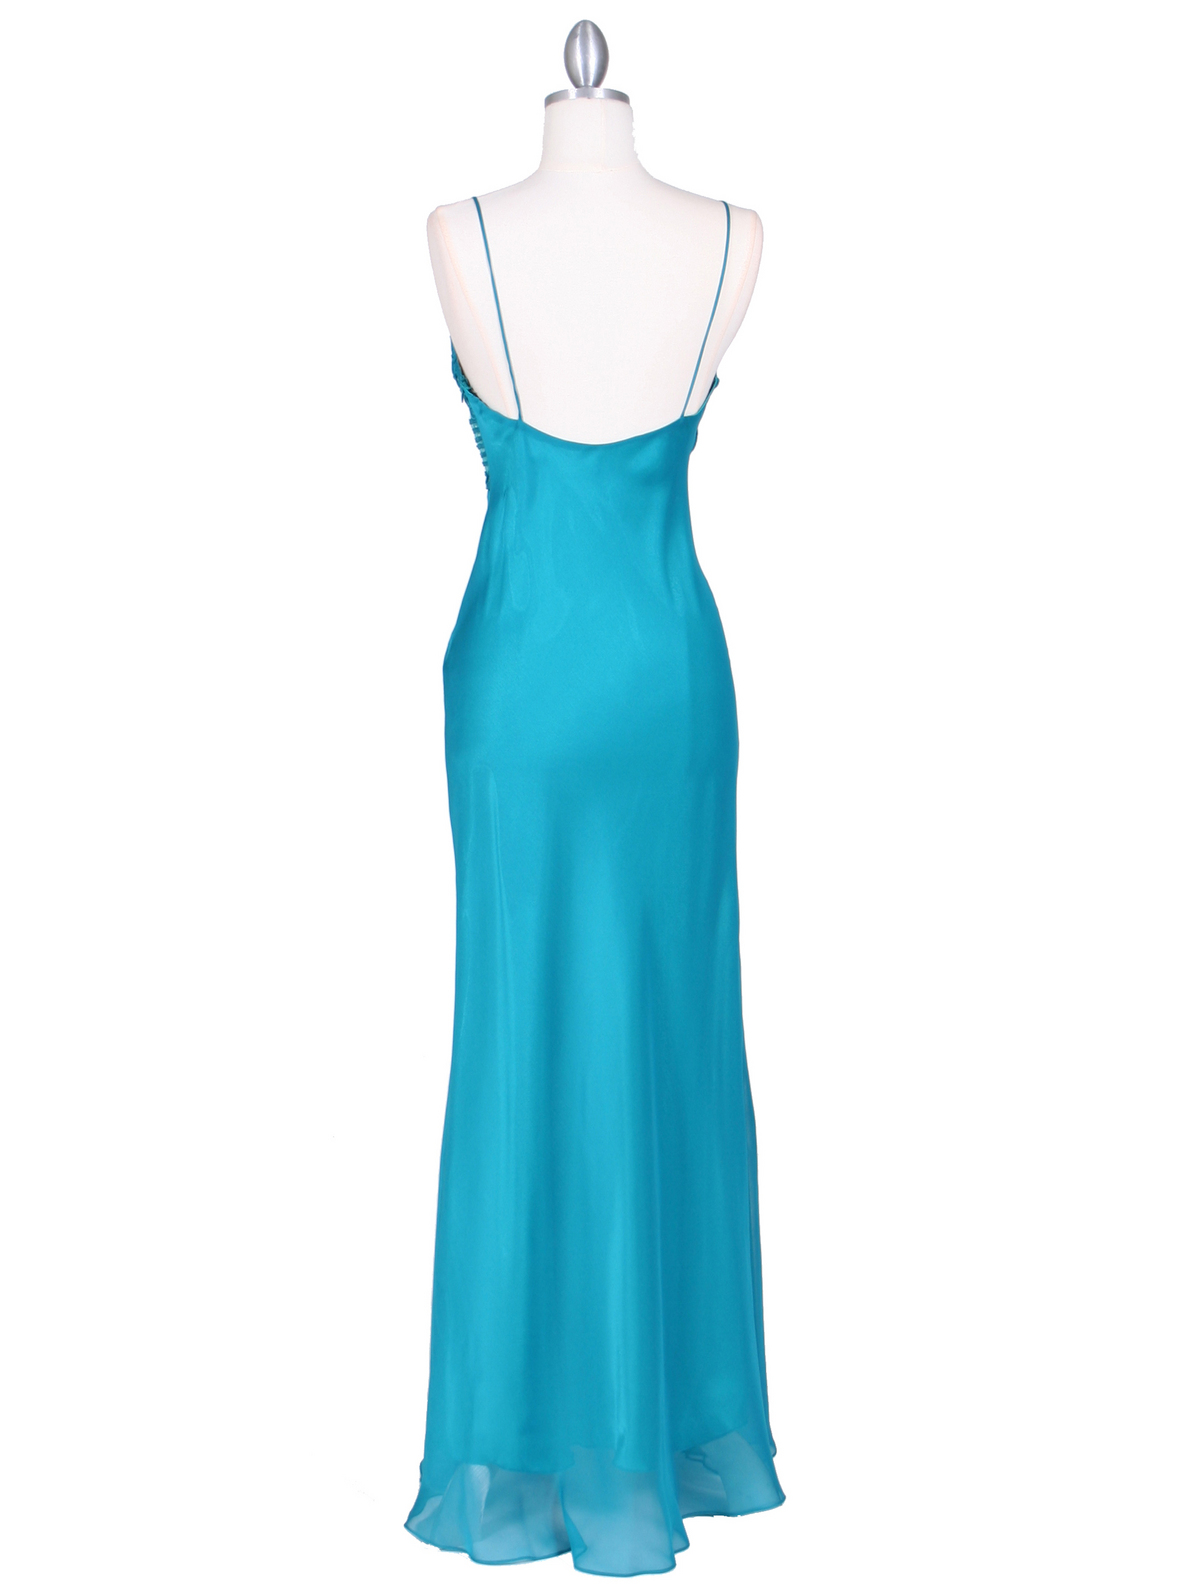 Teal Illusion Evening Gown | Sung Boutique L.A.